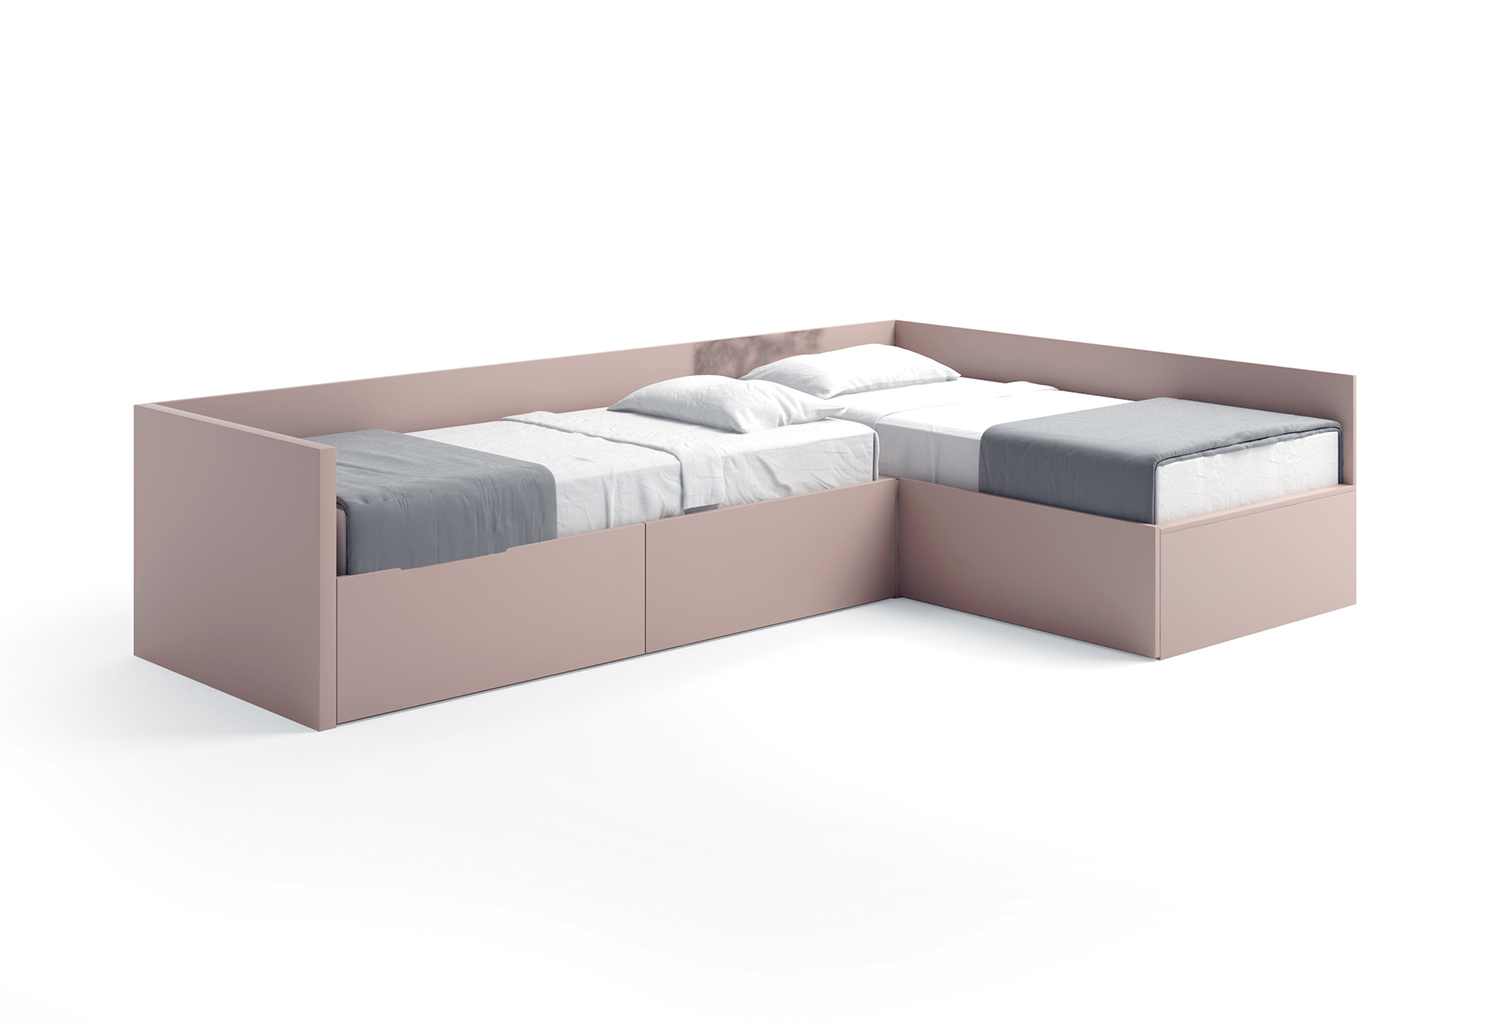 L-shaped beds with headboards and back panels